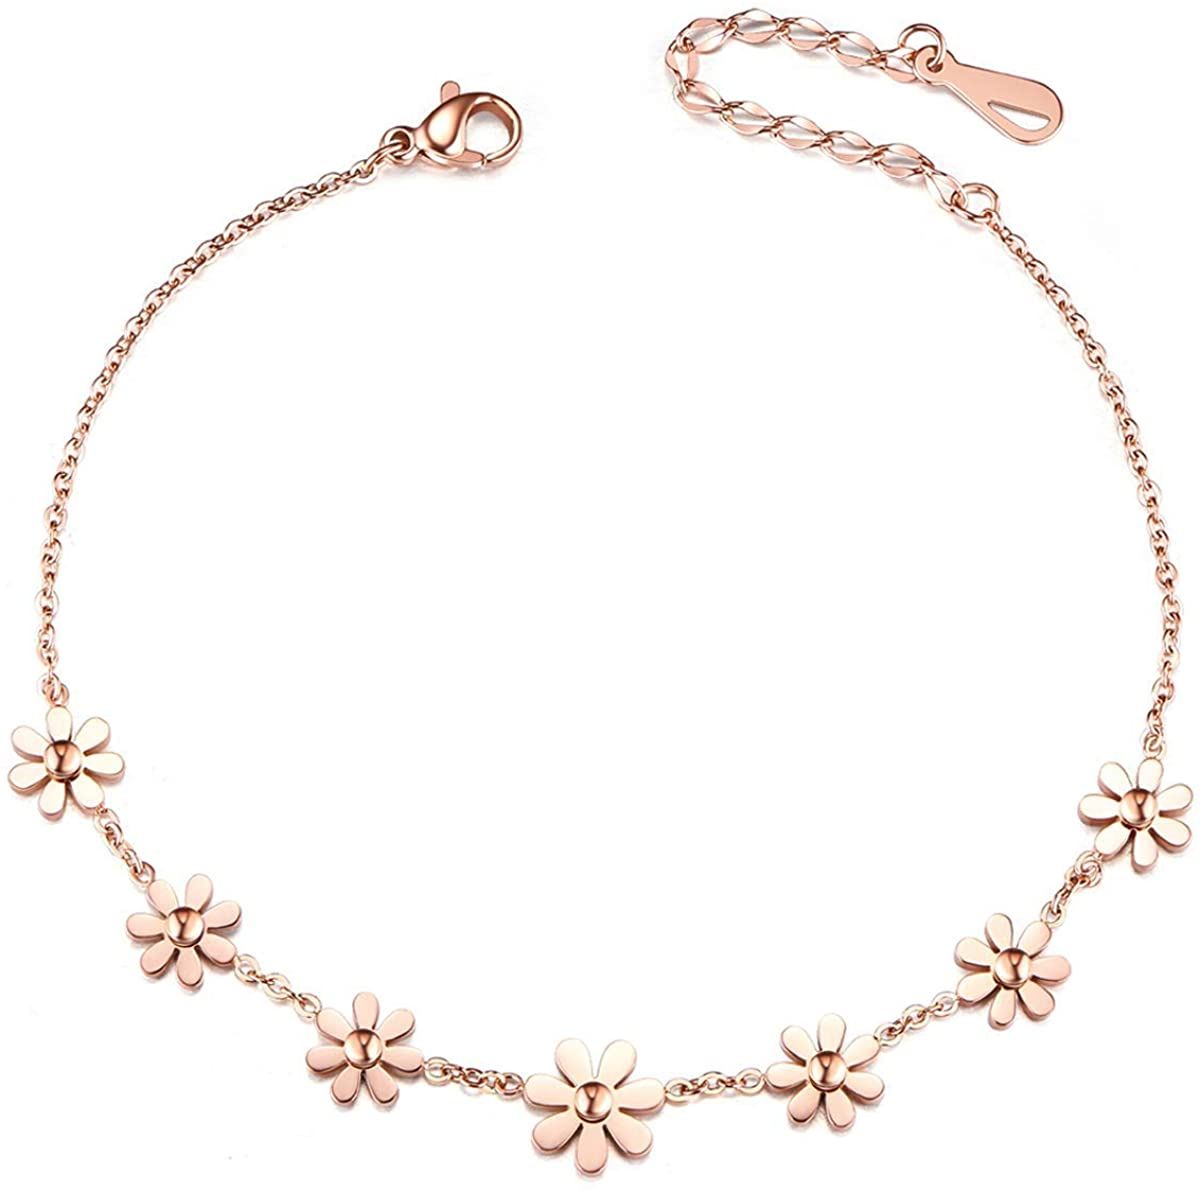 SHEGRACE Woman Stainless Steel Daisy Flowers Anklet Rose Gold Adjustable 200mm Jewellery Gift